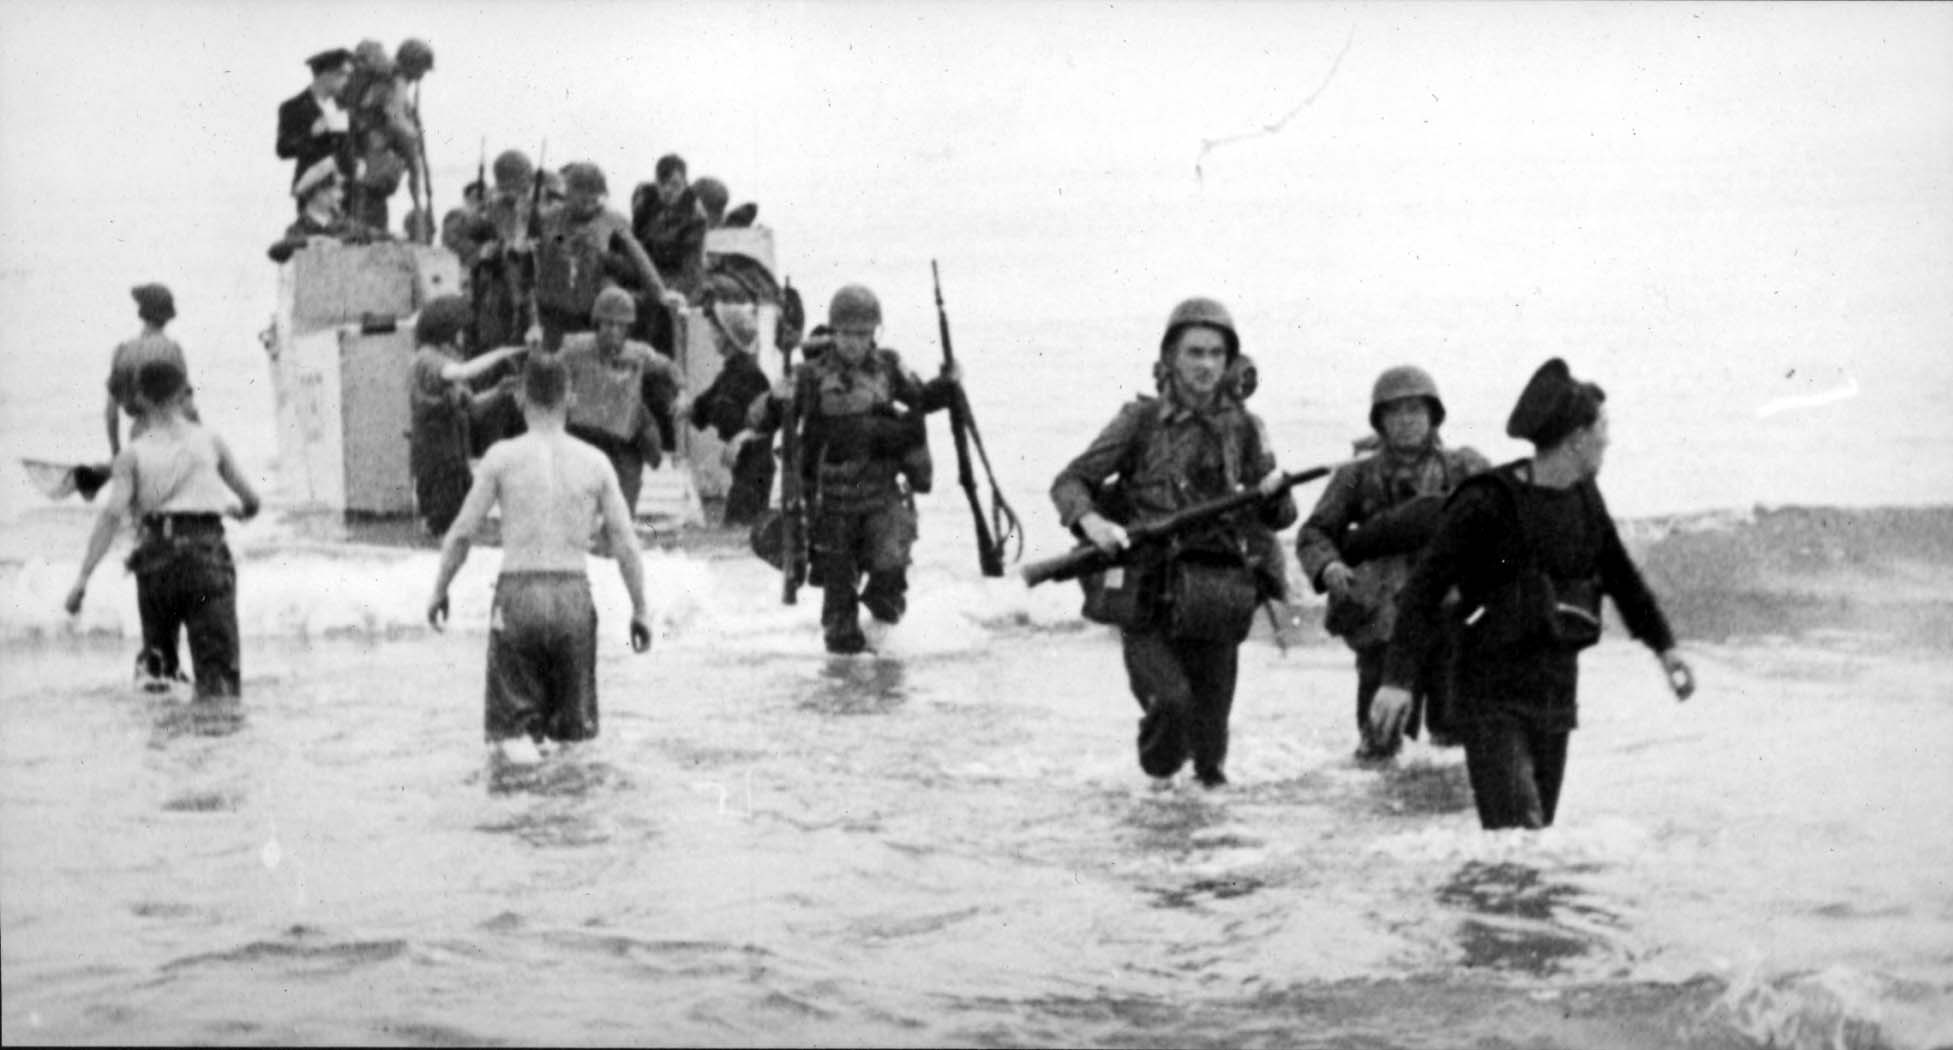 American soldiers landing on the beach, Algeria, November 1942